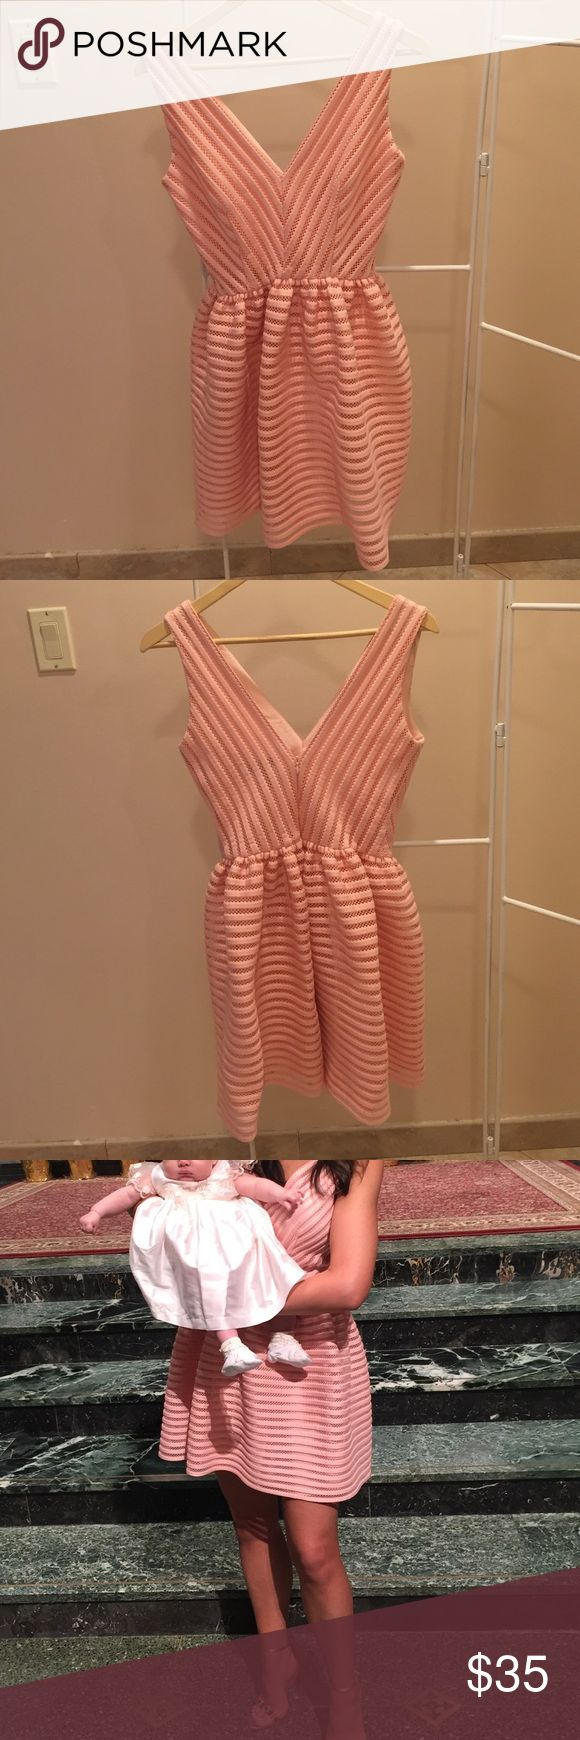 Aqua (Bloomingdales Brand) Dress Pale Pink V-neck Fit and Flare Dress , By Aqua . Super Flattering  and comfortable. PERFECT ✨ Fairy Godmother Dress ✨. Worn for probably 6 hours in perfect condition .. Baby not for sale !  Aqua Dresses Mini